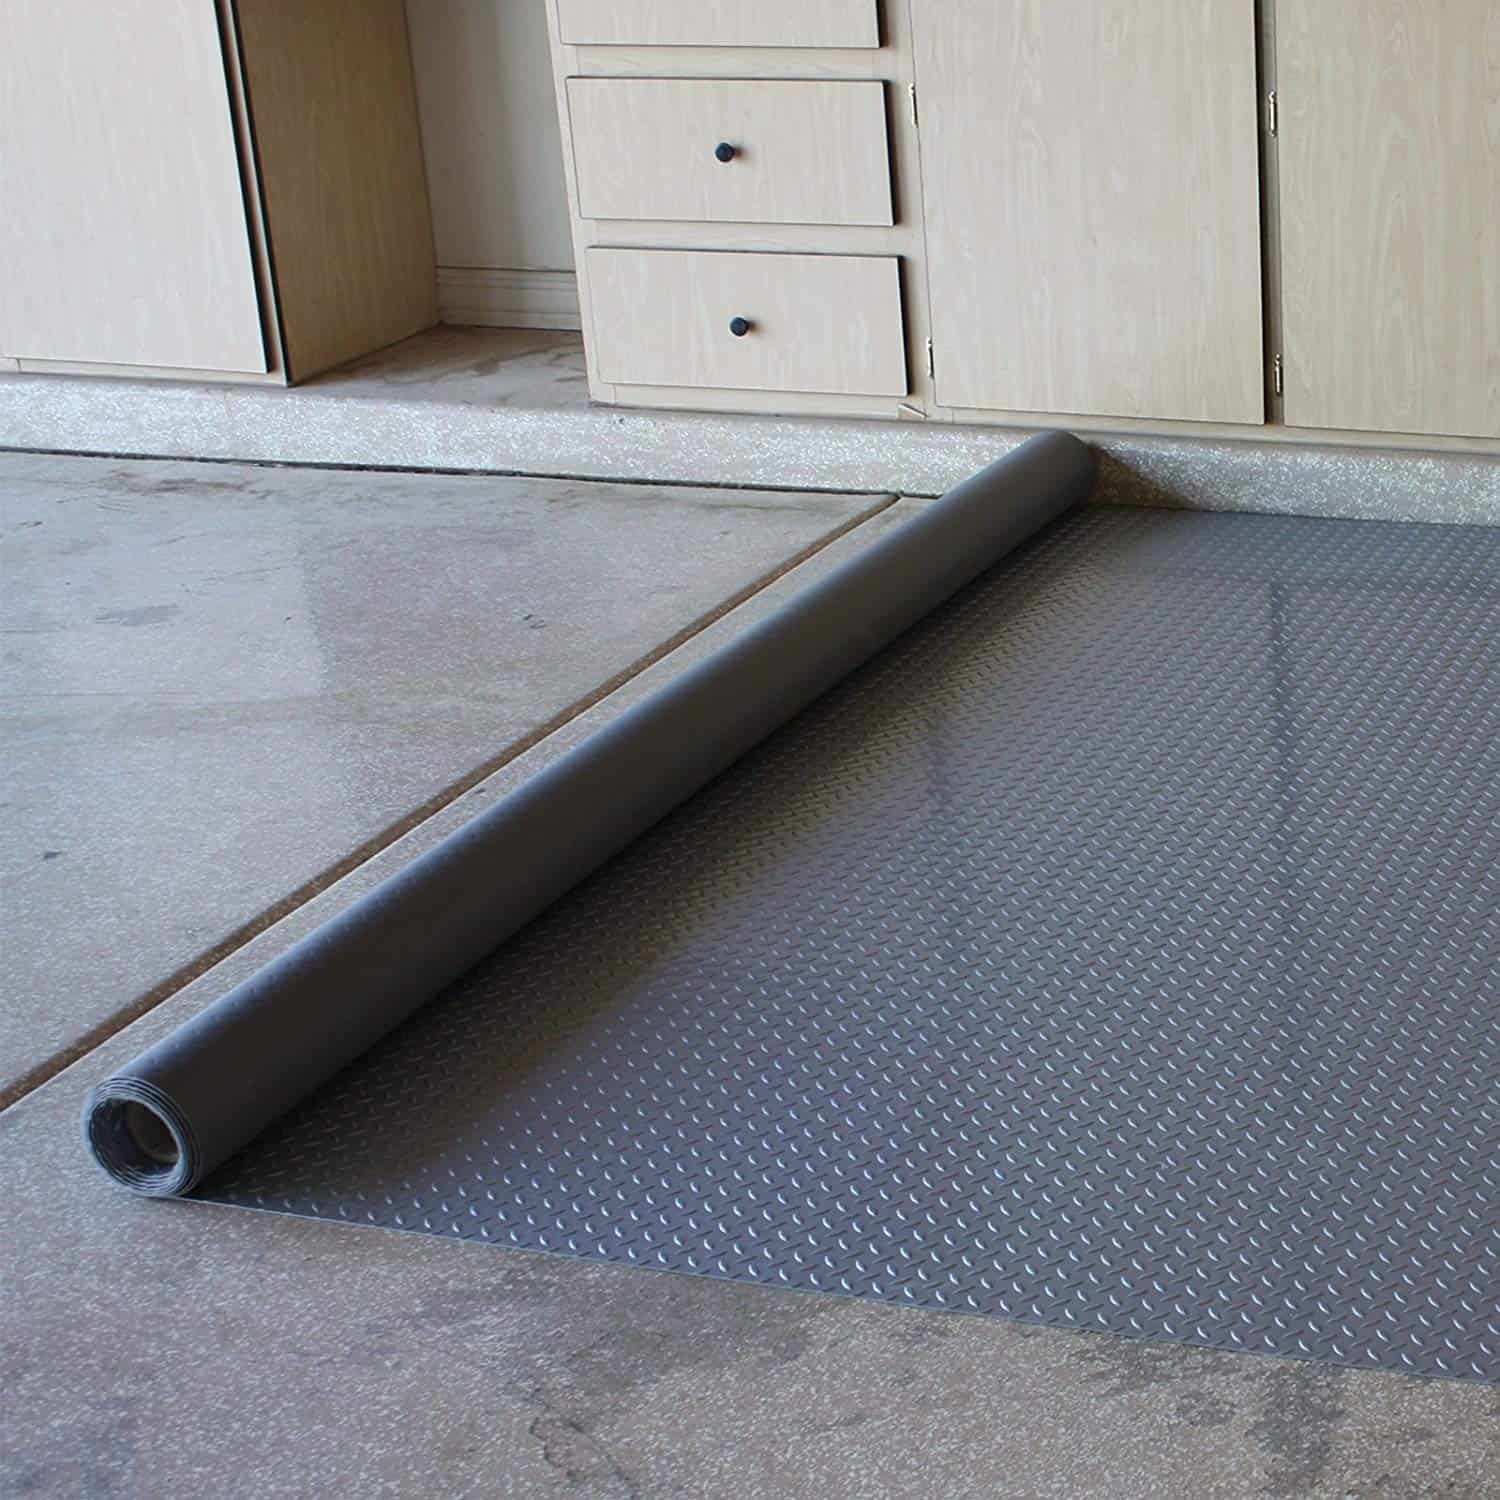 10 Best Garage Floor Mats Reviewed August 2019